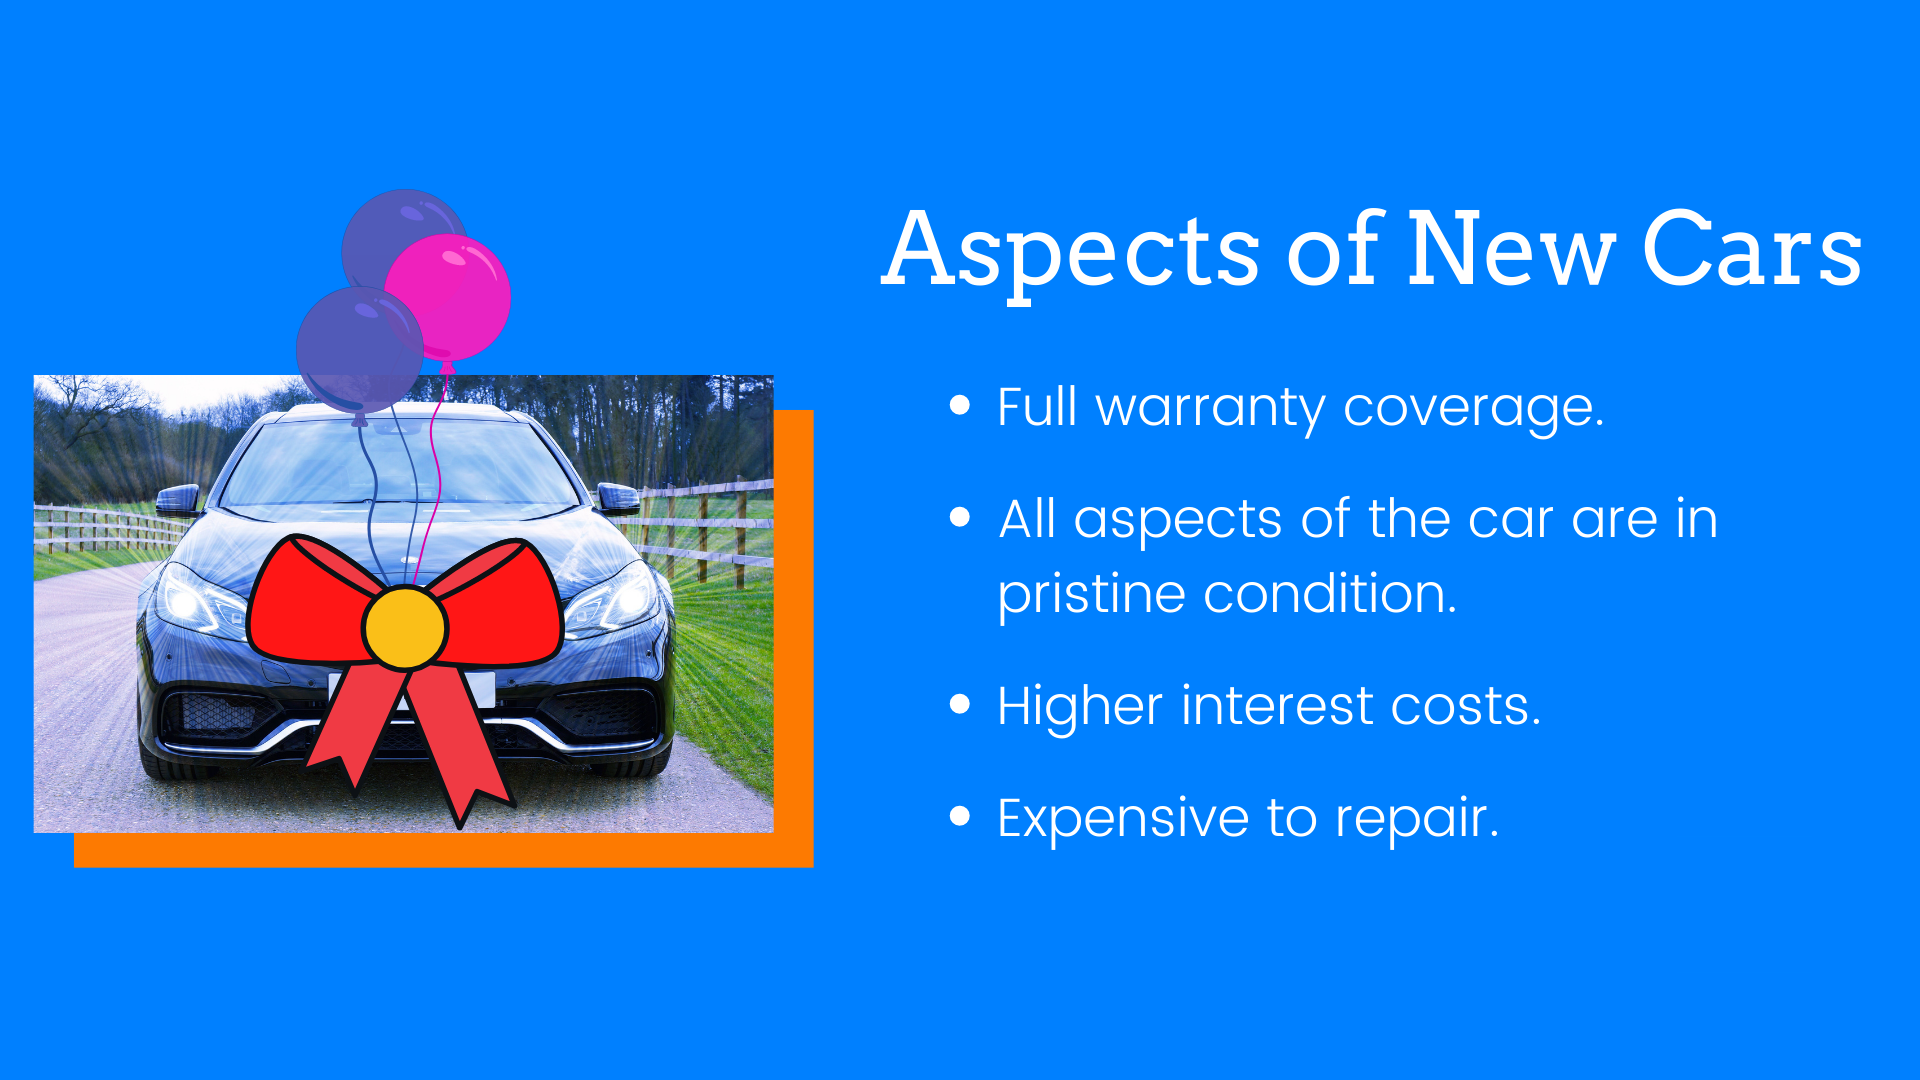 1:Full warranty coverage. 2:All aspects of the car are in pristine condition. 3:Higher interest costs. 4:Expensive to repair.